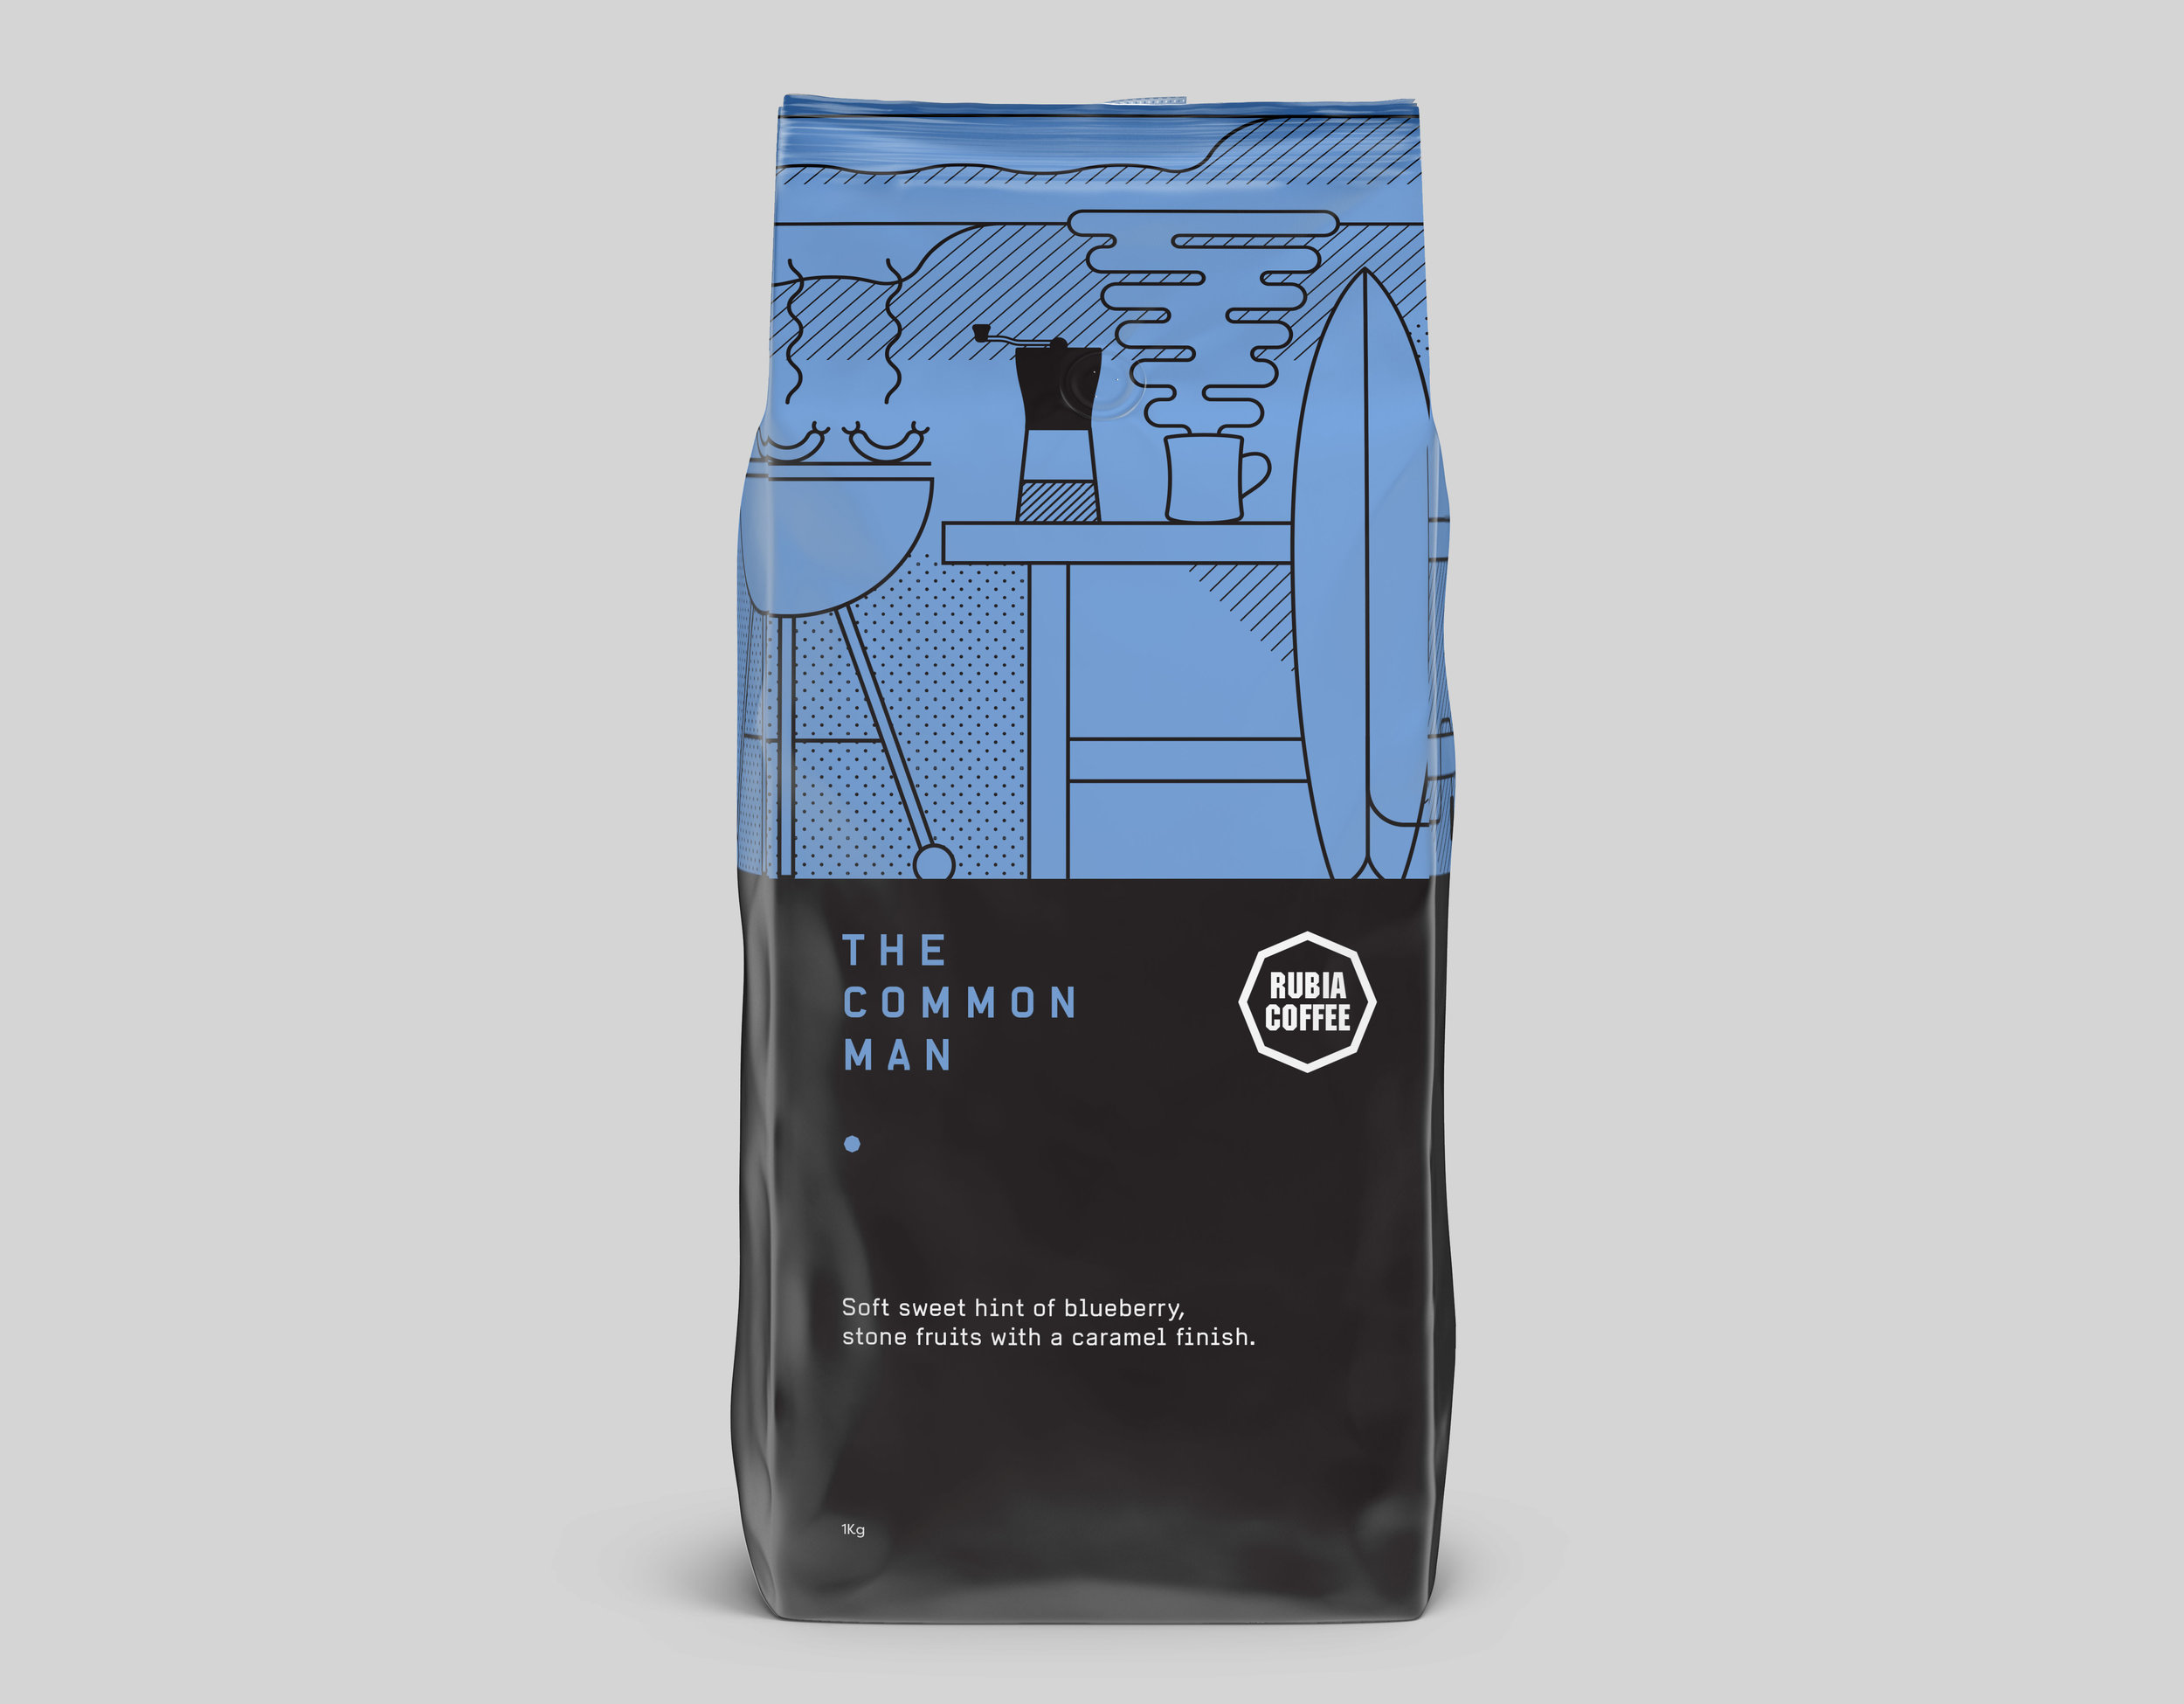 Rubia Coffee The Common Man packaging design Graphic design melbourne, branding design melbourne, branding design, packaging design melbourne, design studio melbourne, graphic design